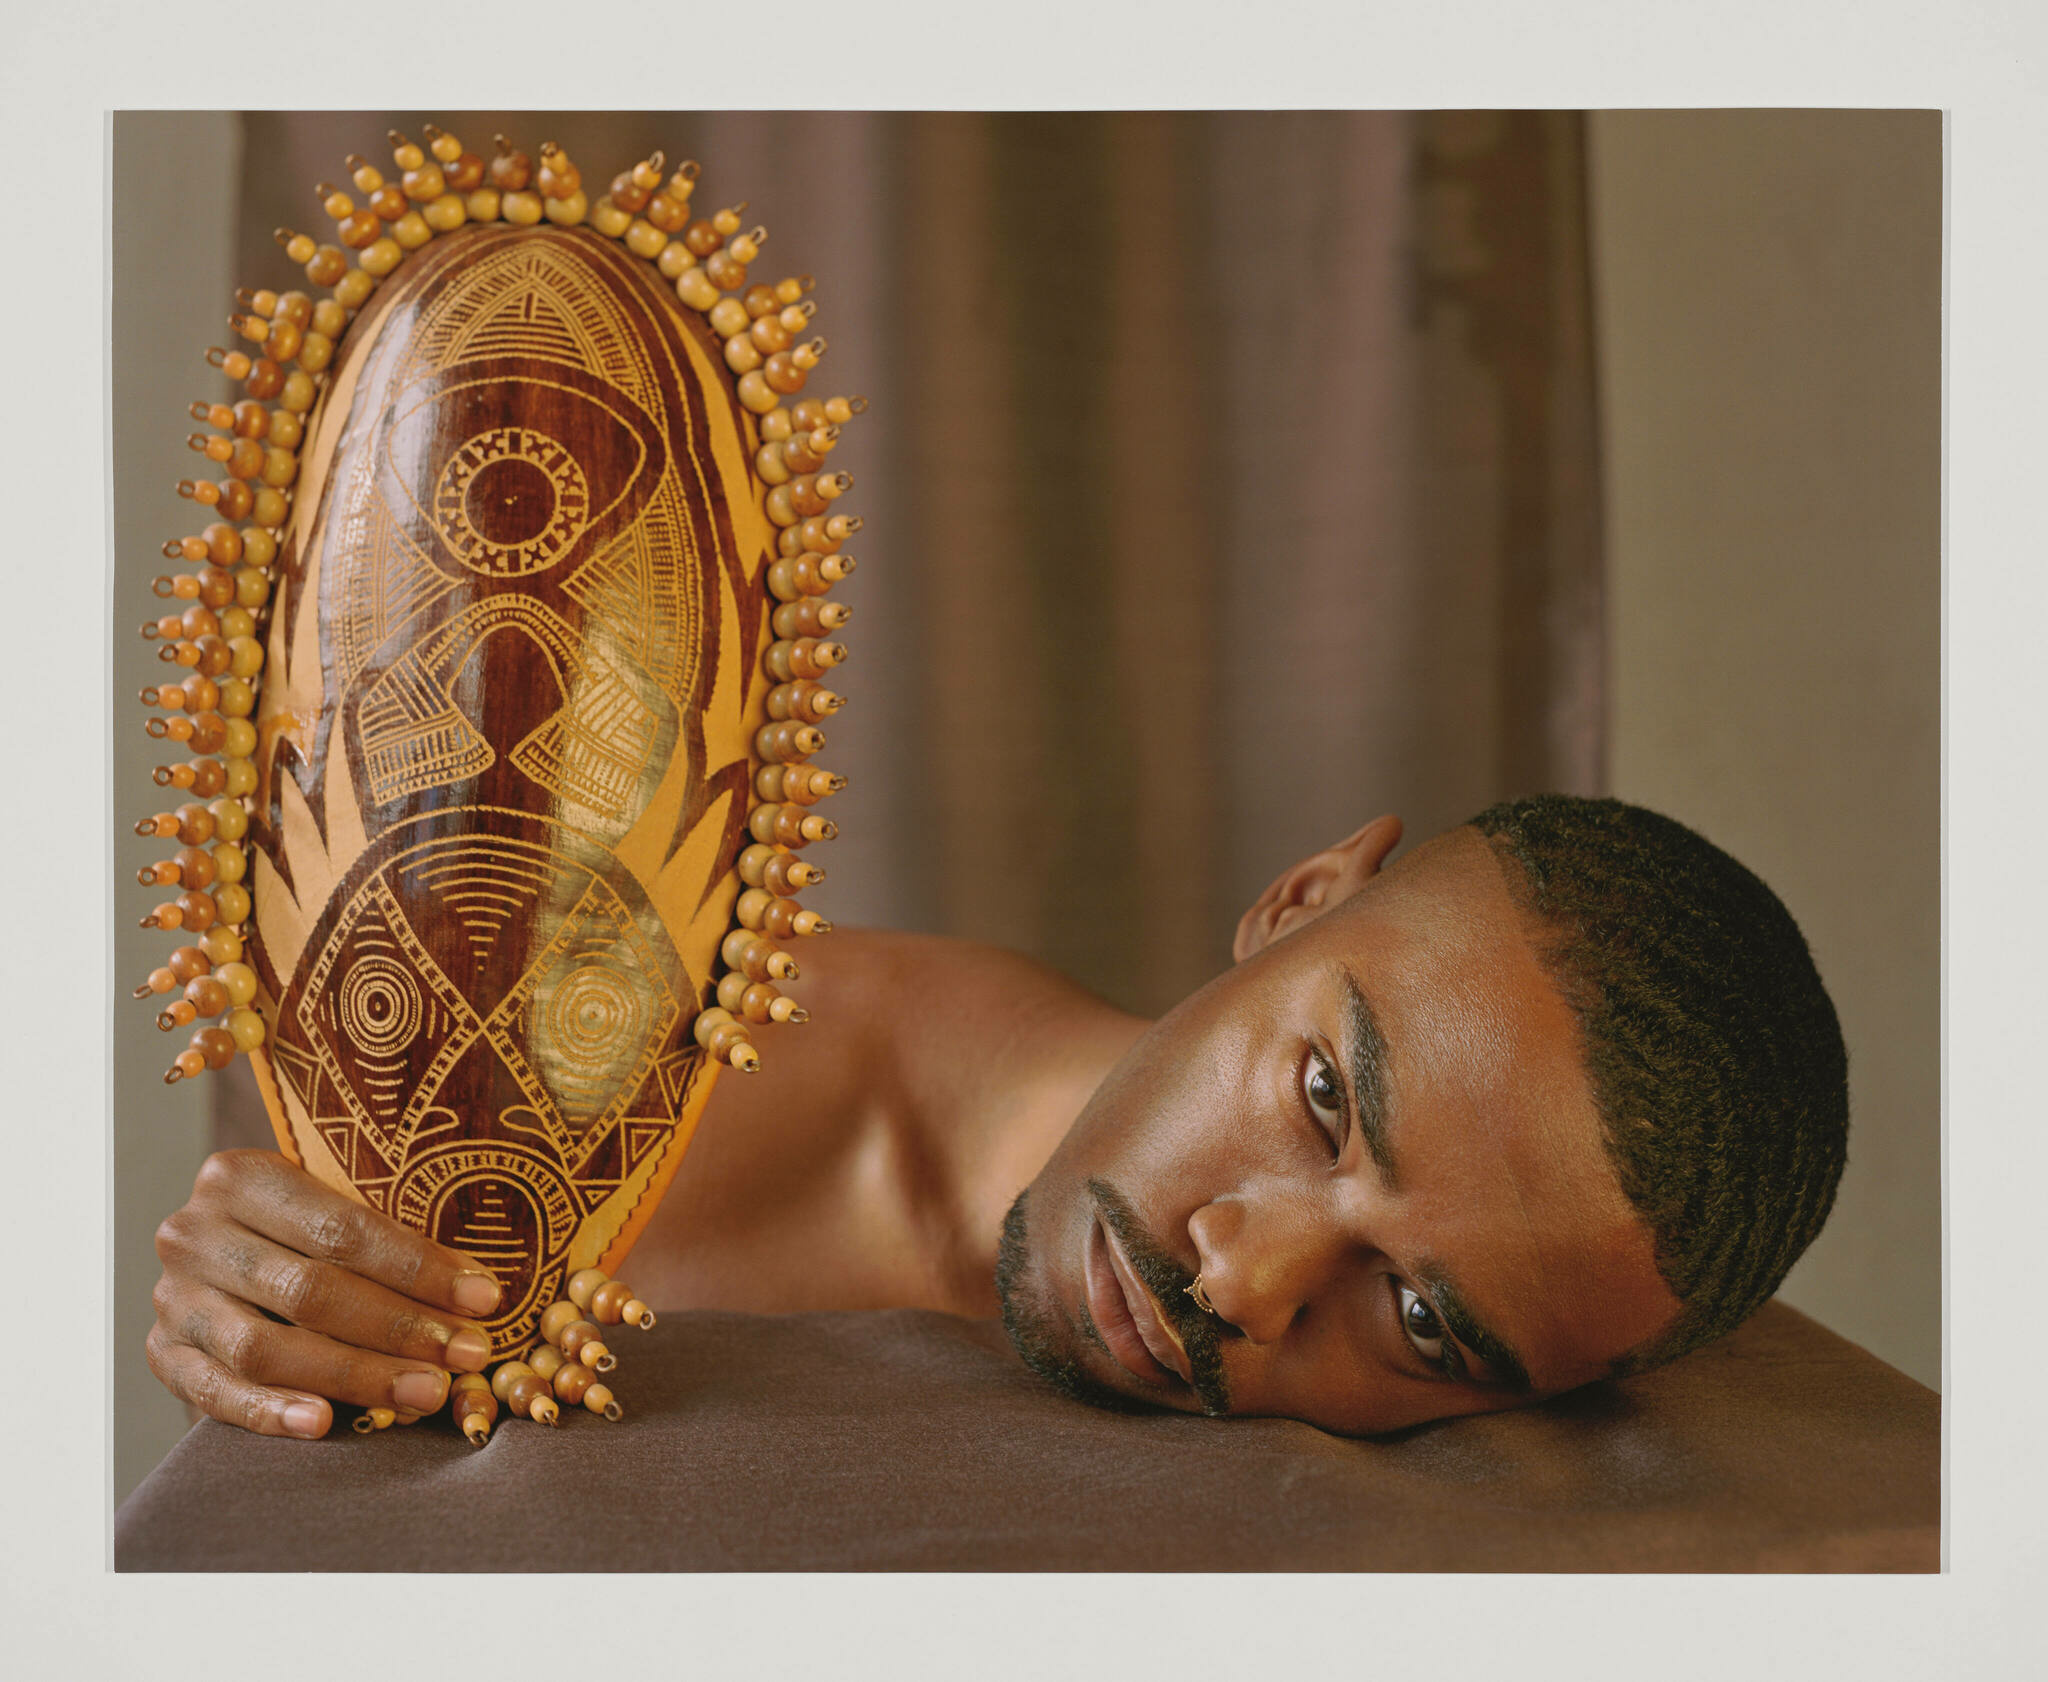 A Black man lies his head on a brown cloth in the foreground, holding an etched and beaded African mask